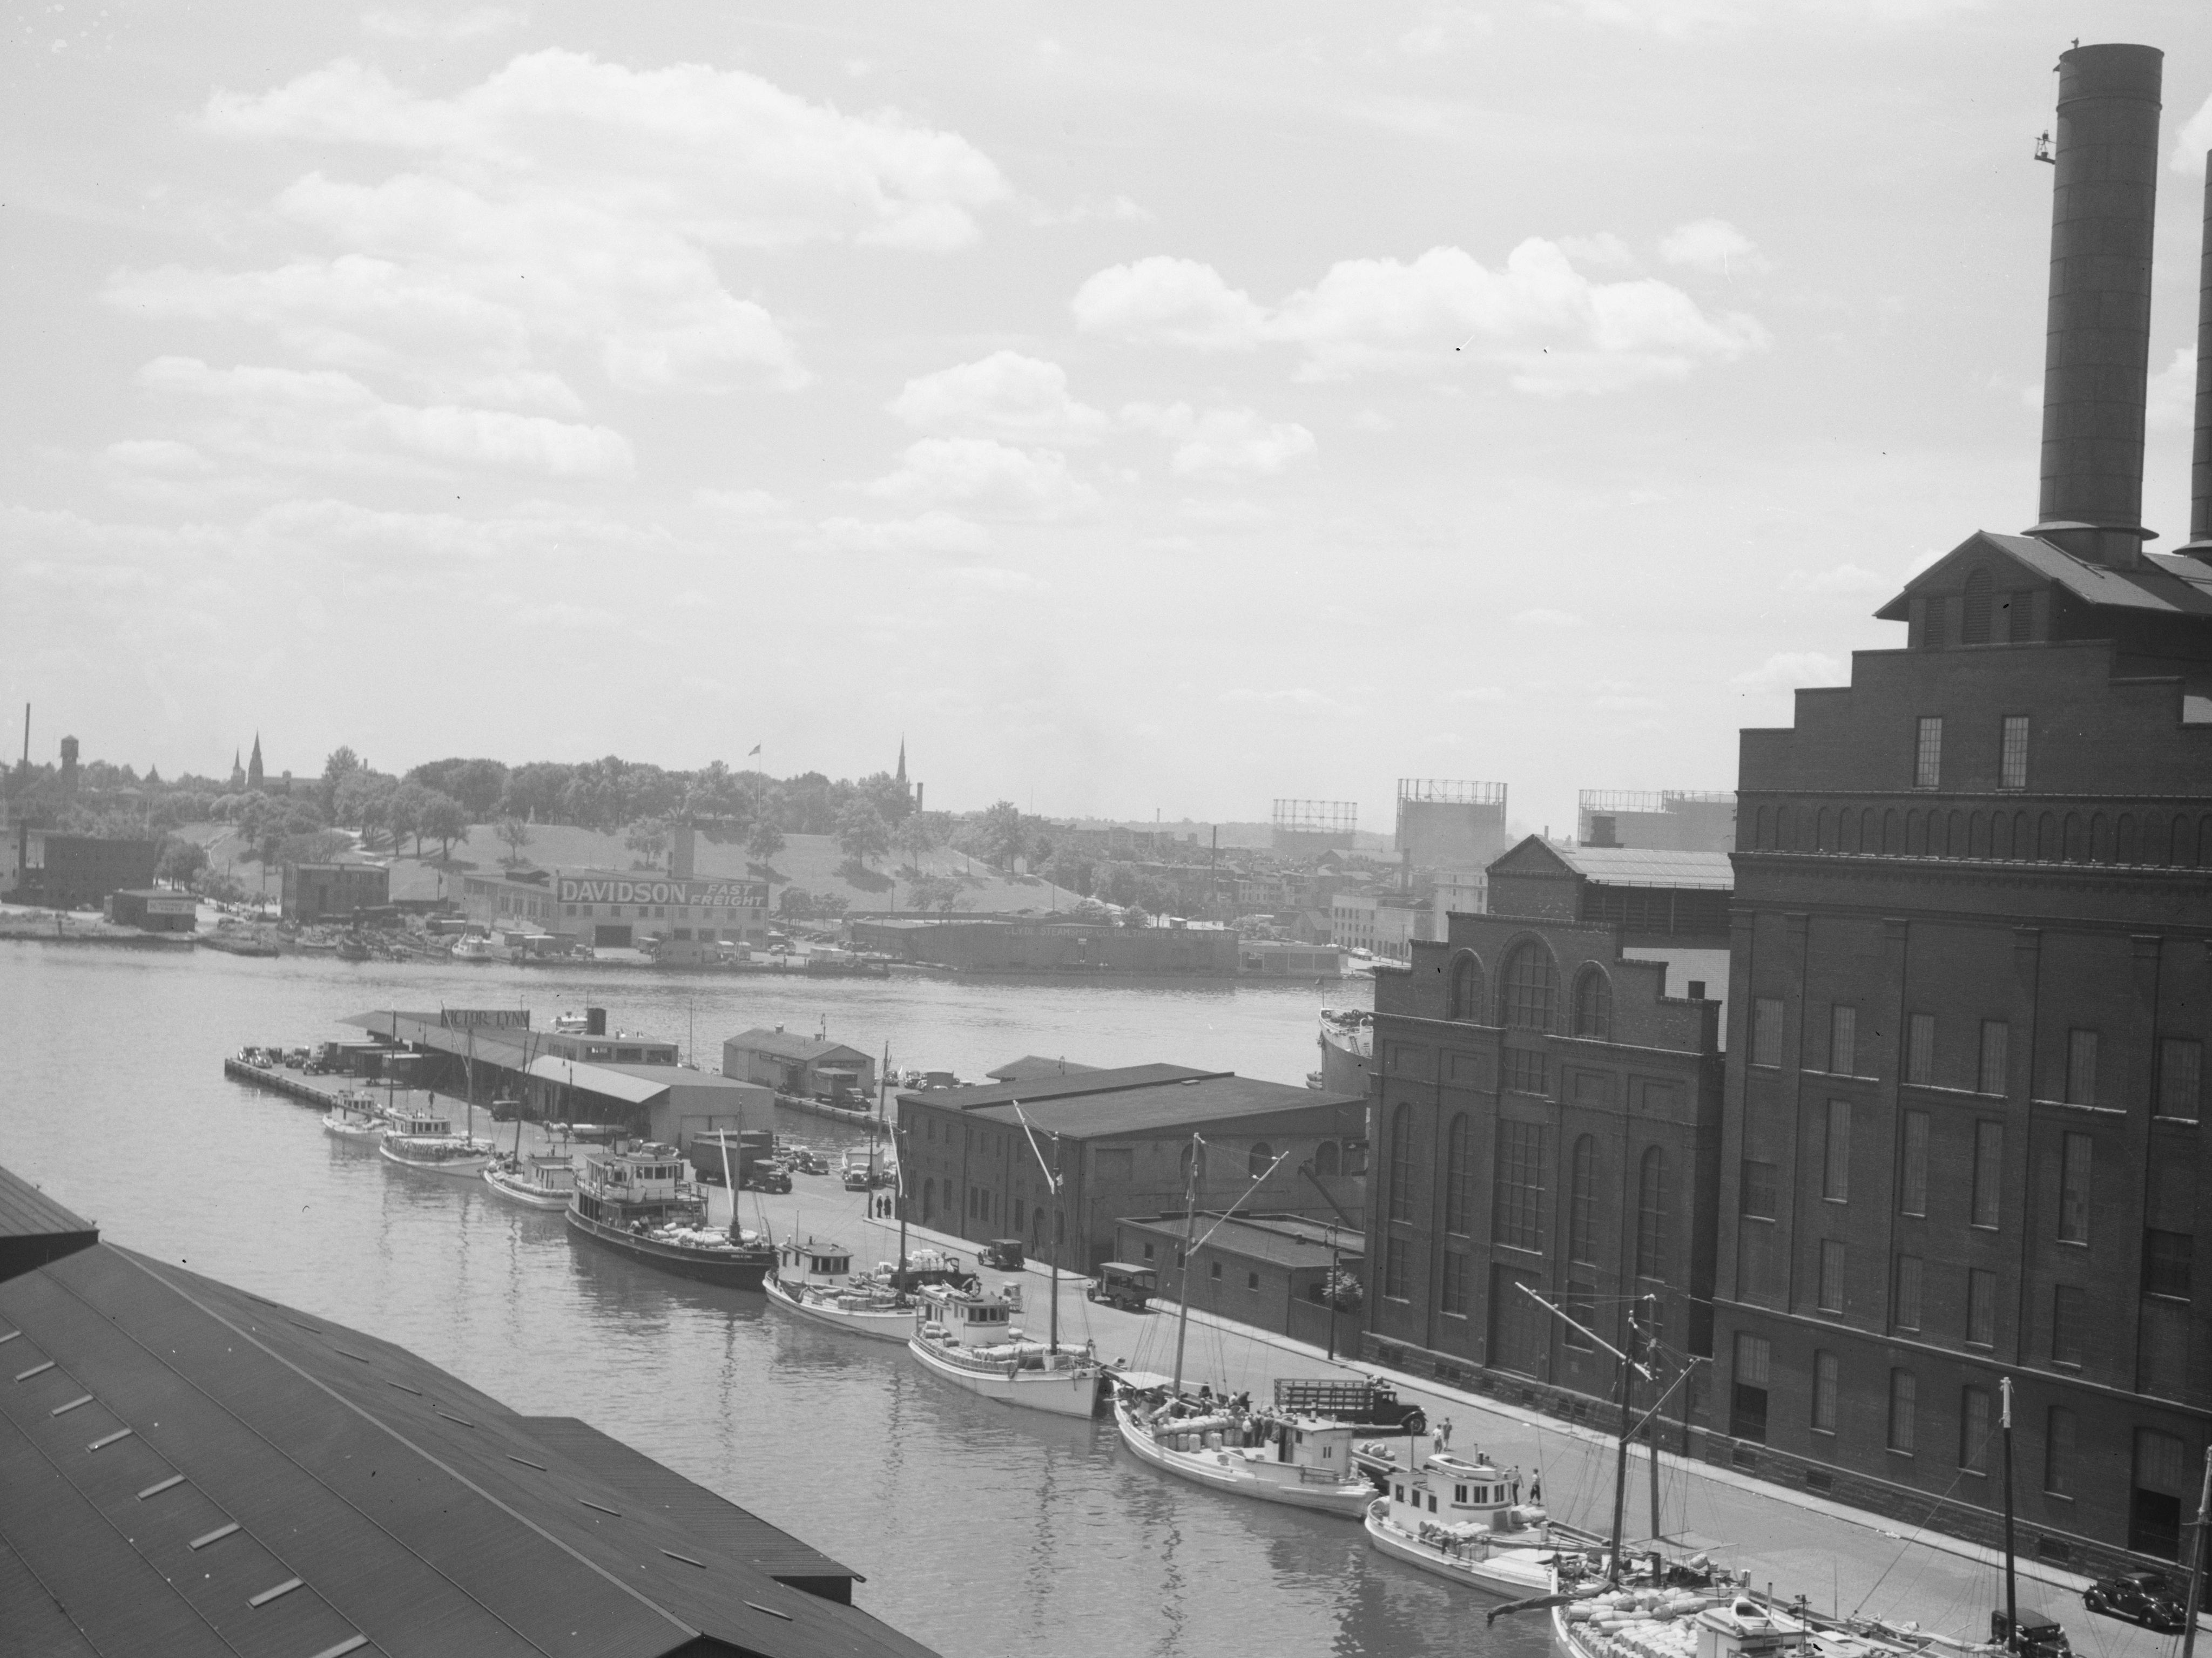 Cool Views of Waterfront in 1938